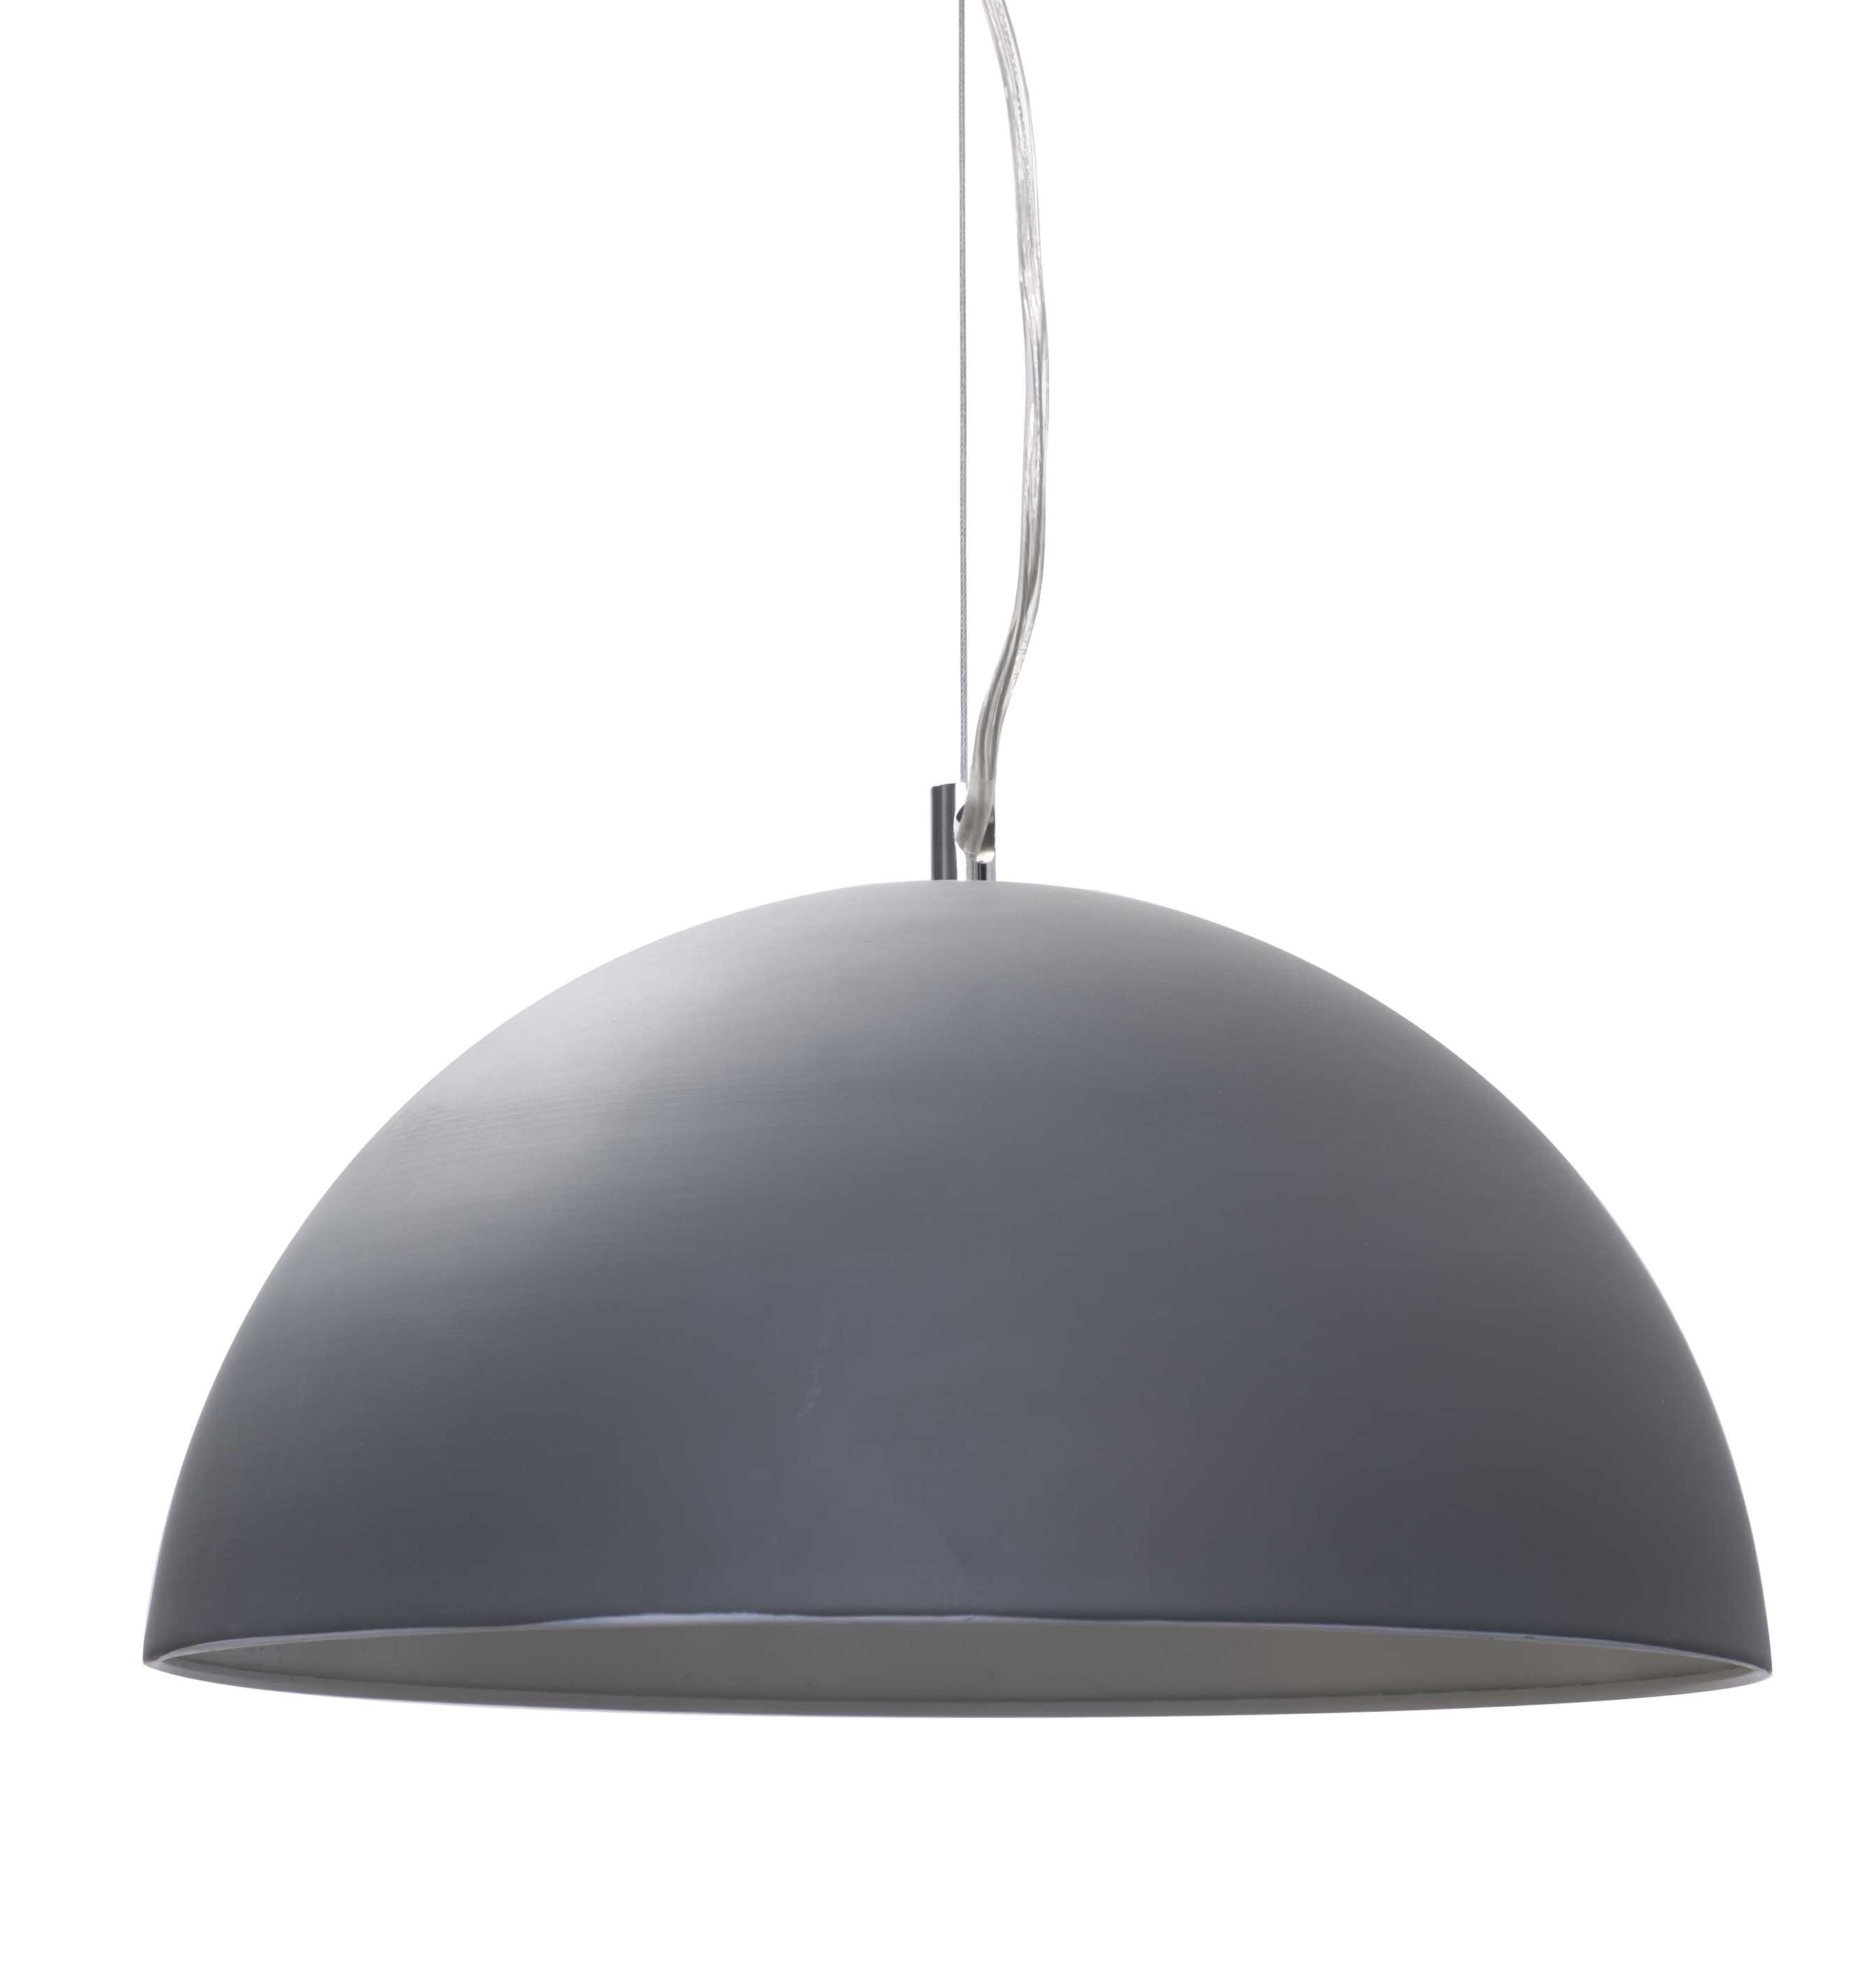 muuto lamp grau unfold shop by frei connox pendant categories lighting